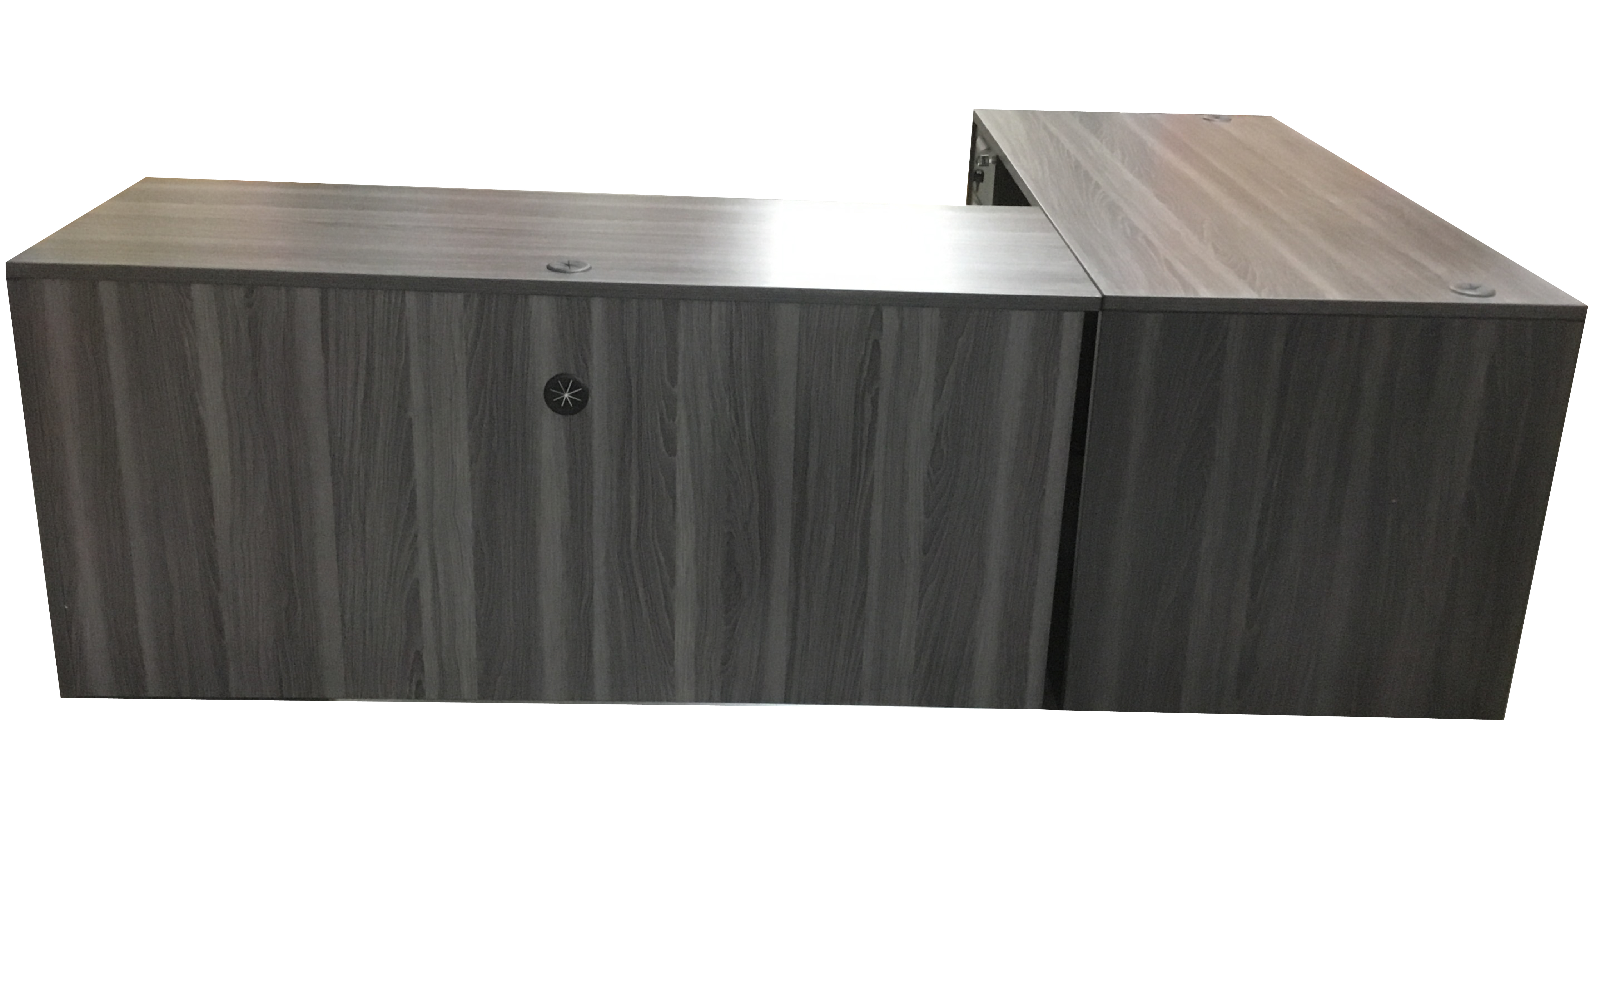 LAMINATE DESK SHELL WITH RETURN